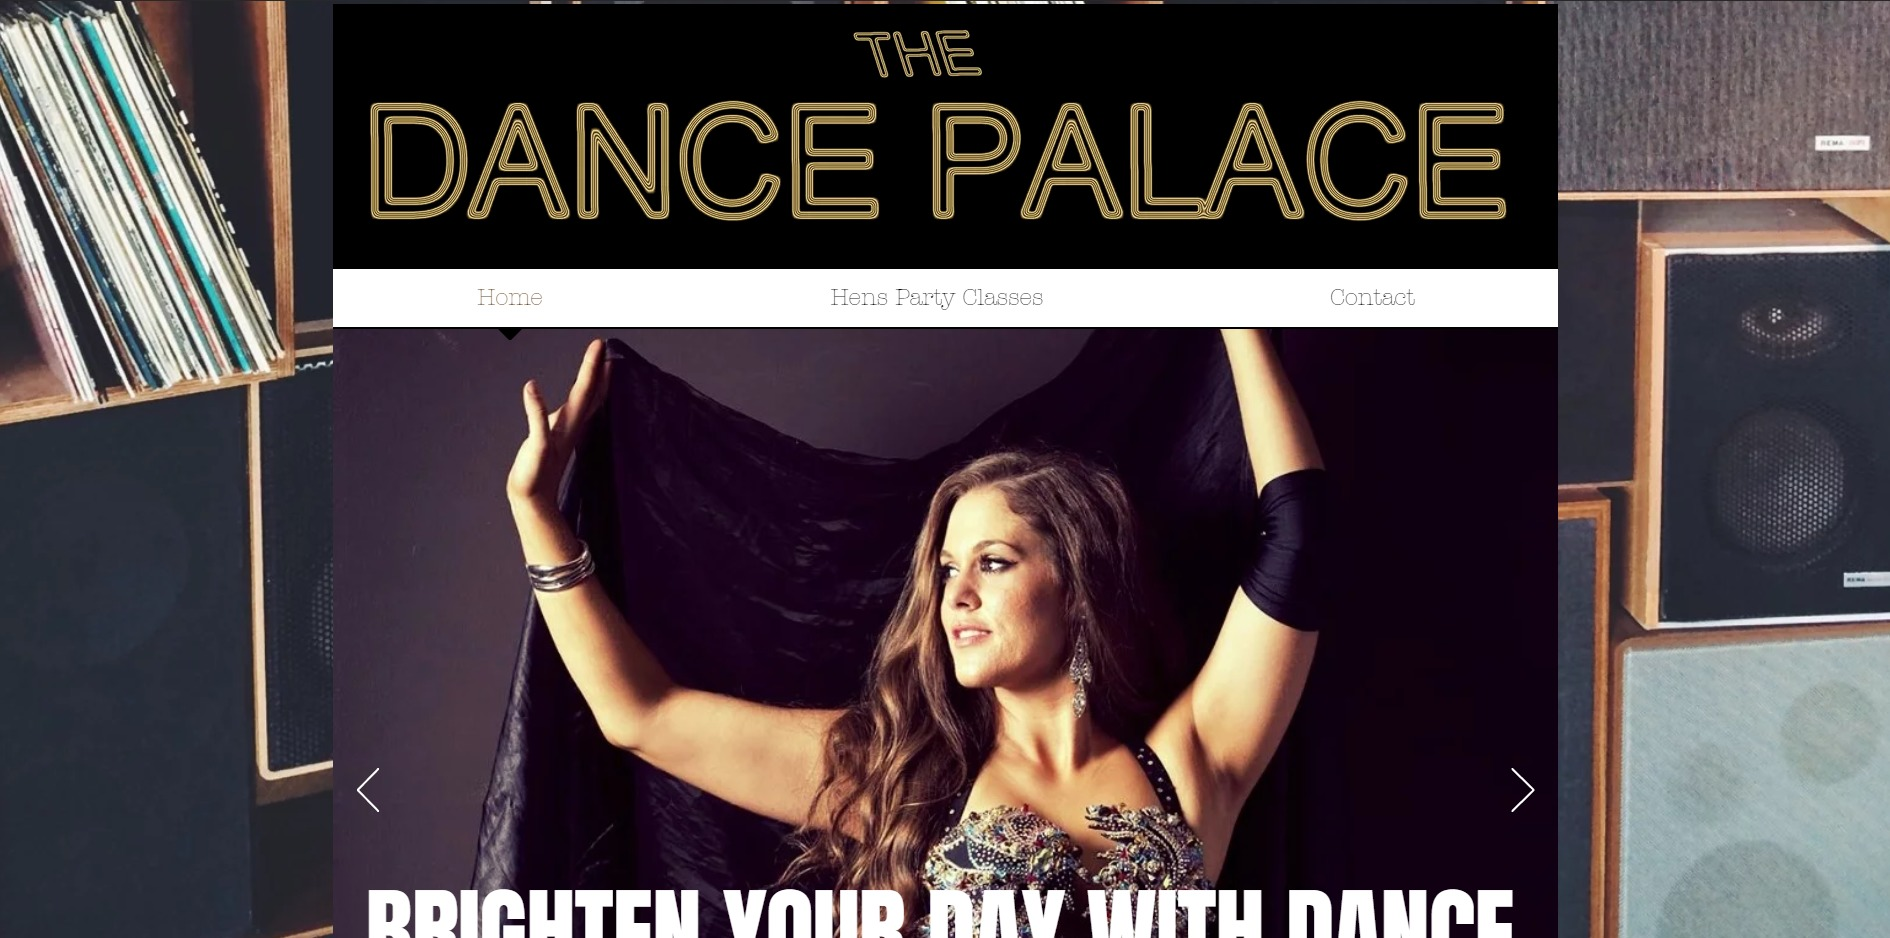 The Dance Palace